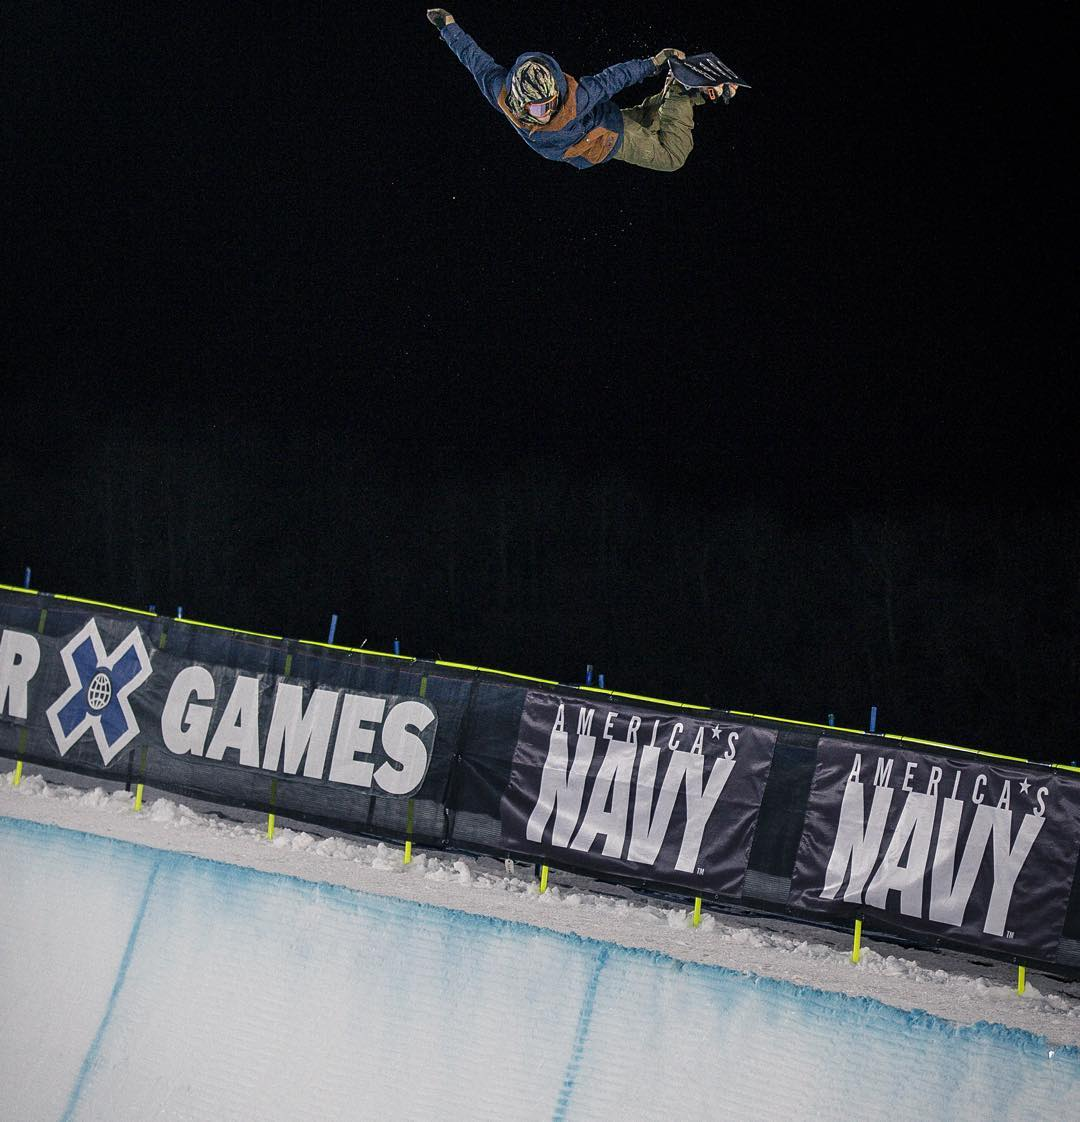 Two-time gold medalist @TravelinDan has confirmed that he will compete in Snowboard SuperPipe at #XGamesOslo Feb. 24-28! (